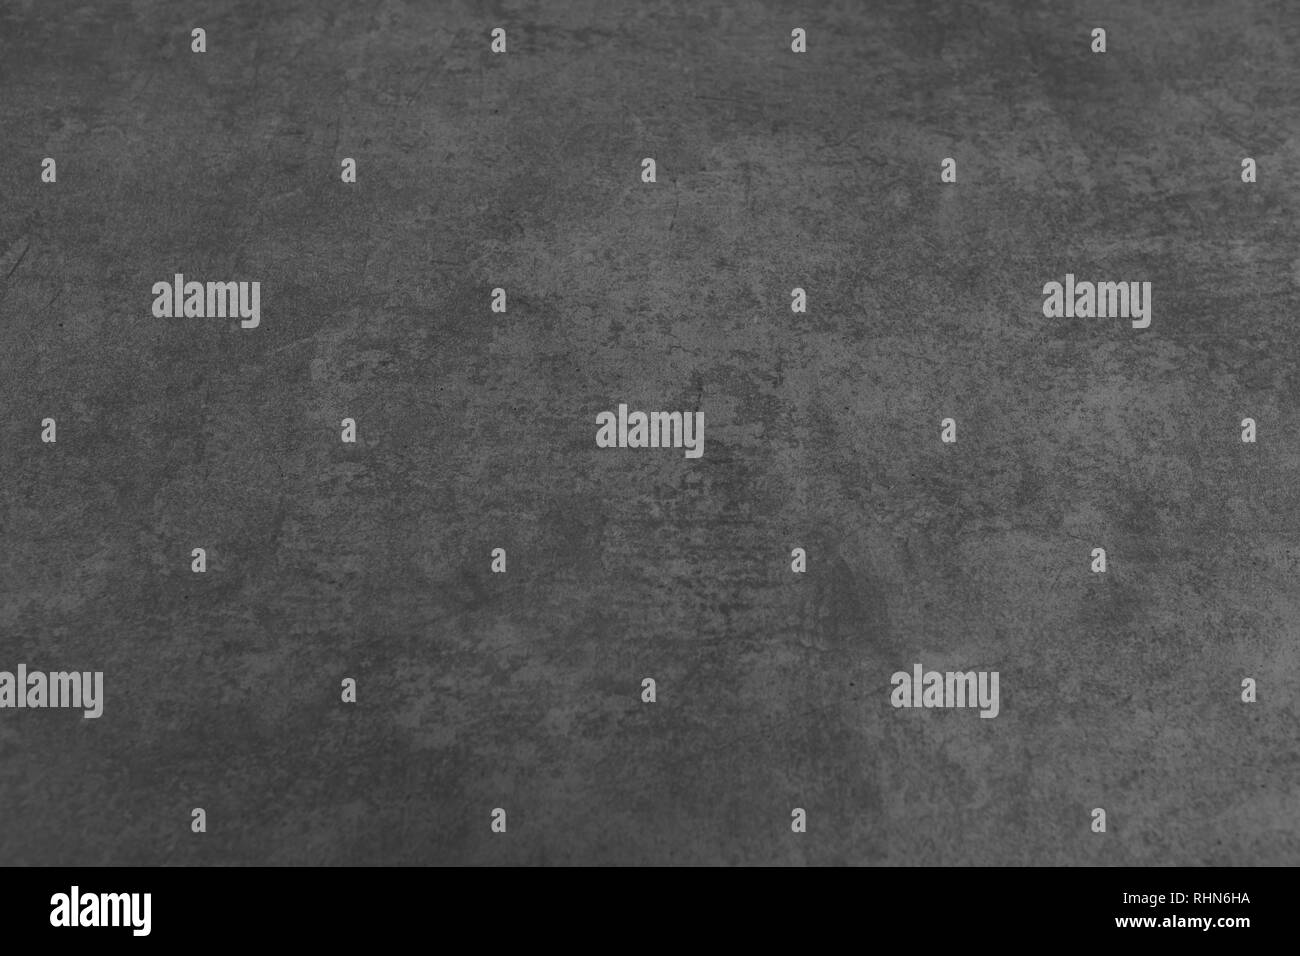 Carreaux De Ciment Texture Plancher De Ciment Noir Gris Foncé Abstract Background Texture Gris